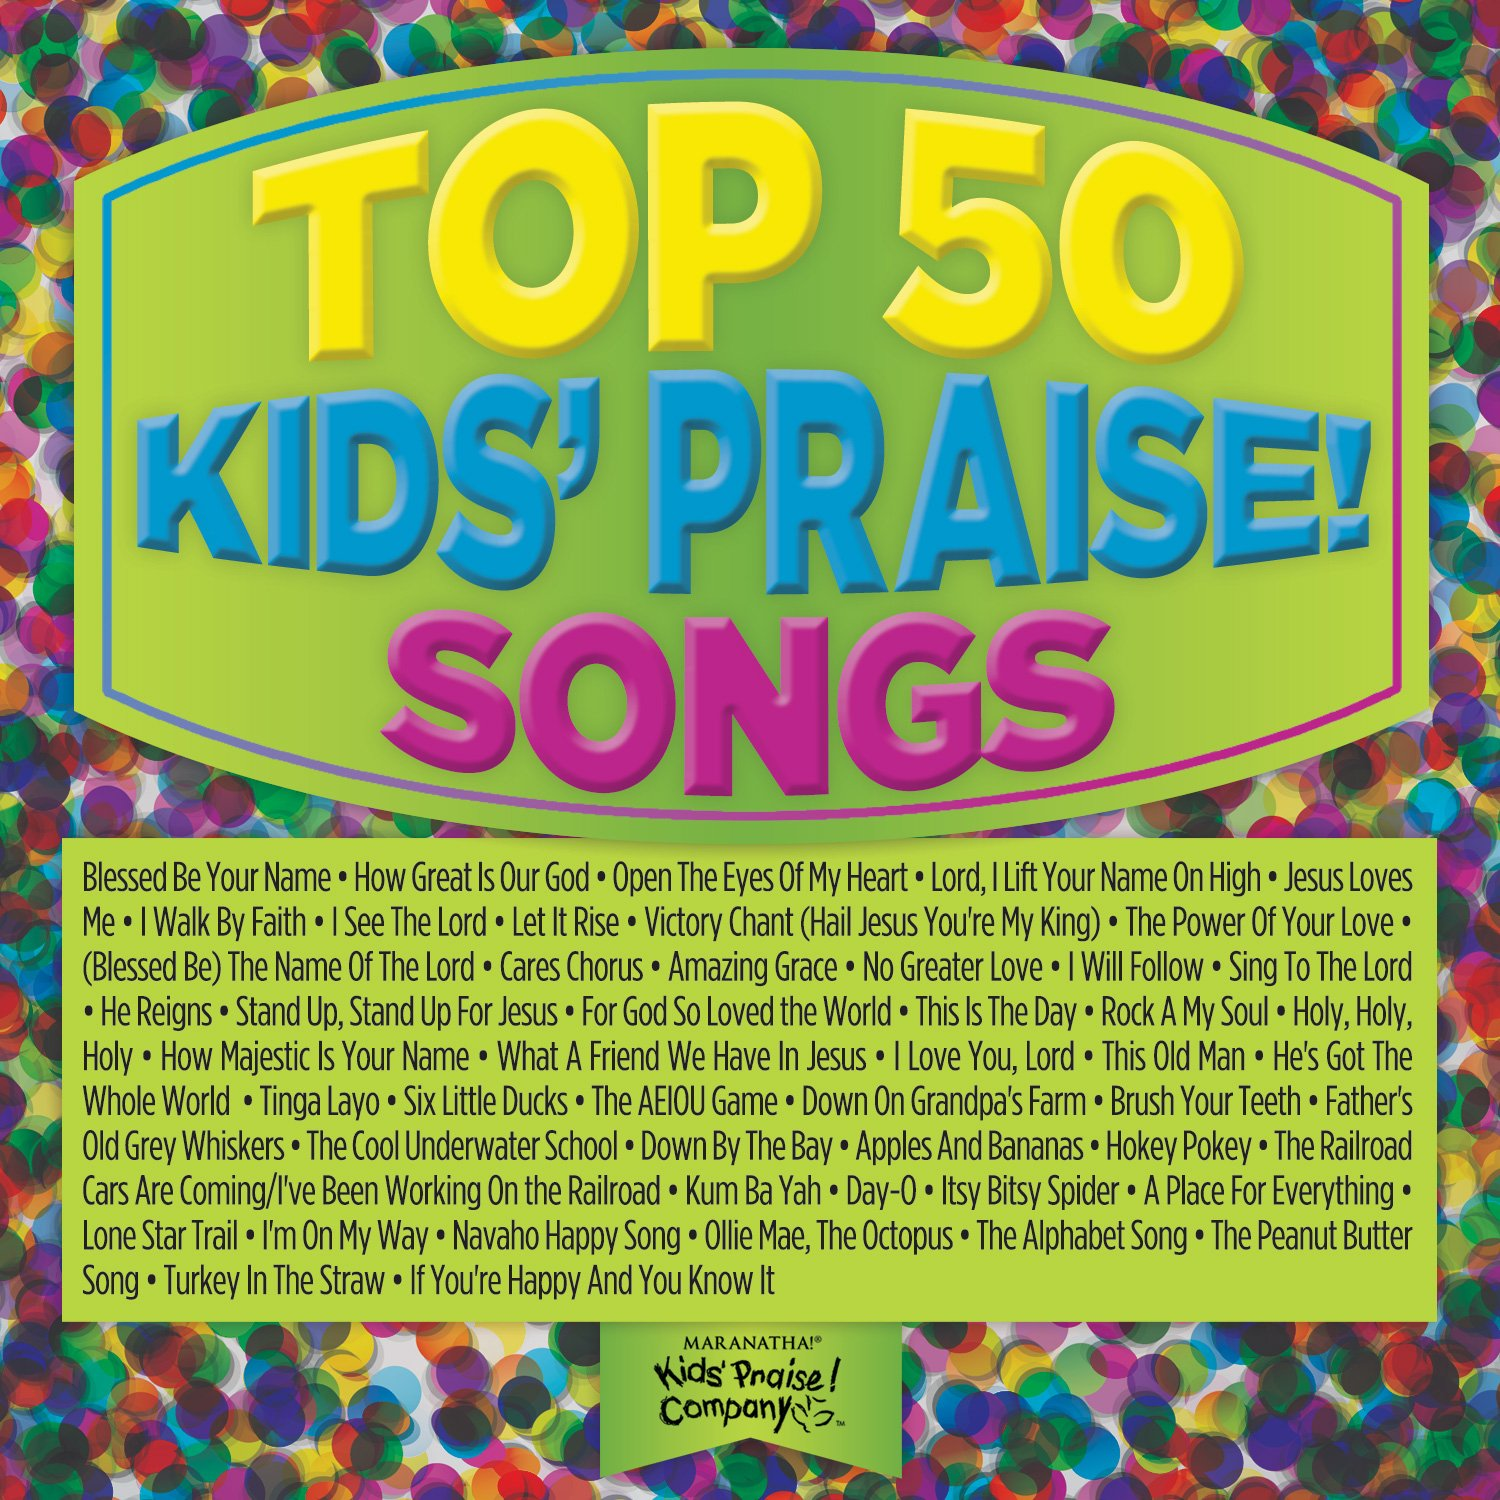 Top 50 Kids Praise Songs (Green) by Capitol Christian Distribution